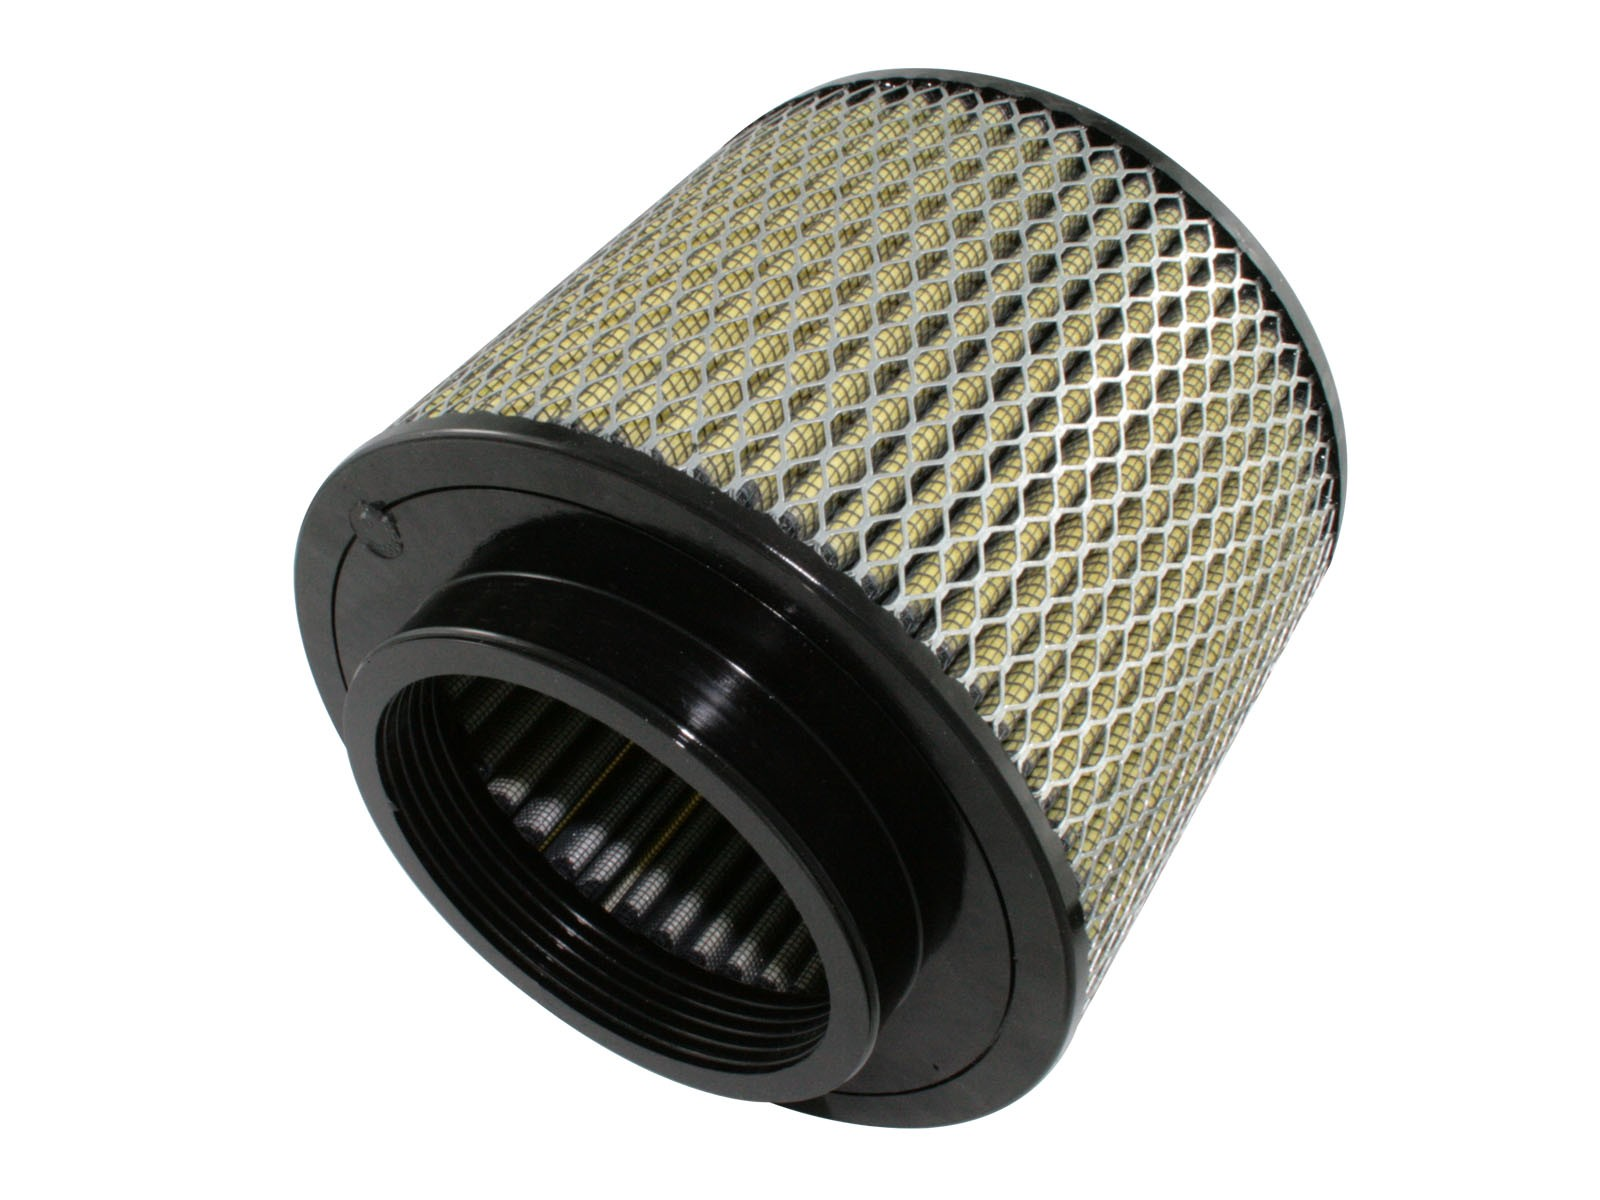 aFe POWER 72-90055 Magnum FLOW Pro GUARD7 Air Filter